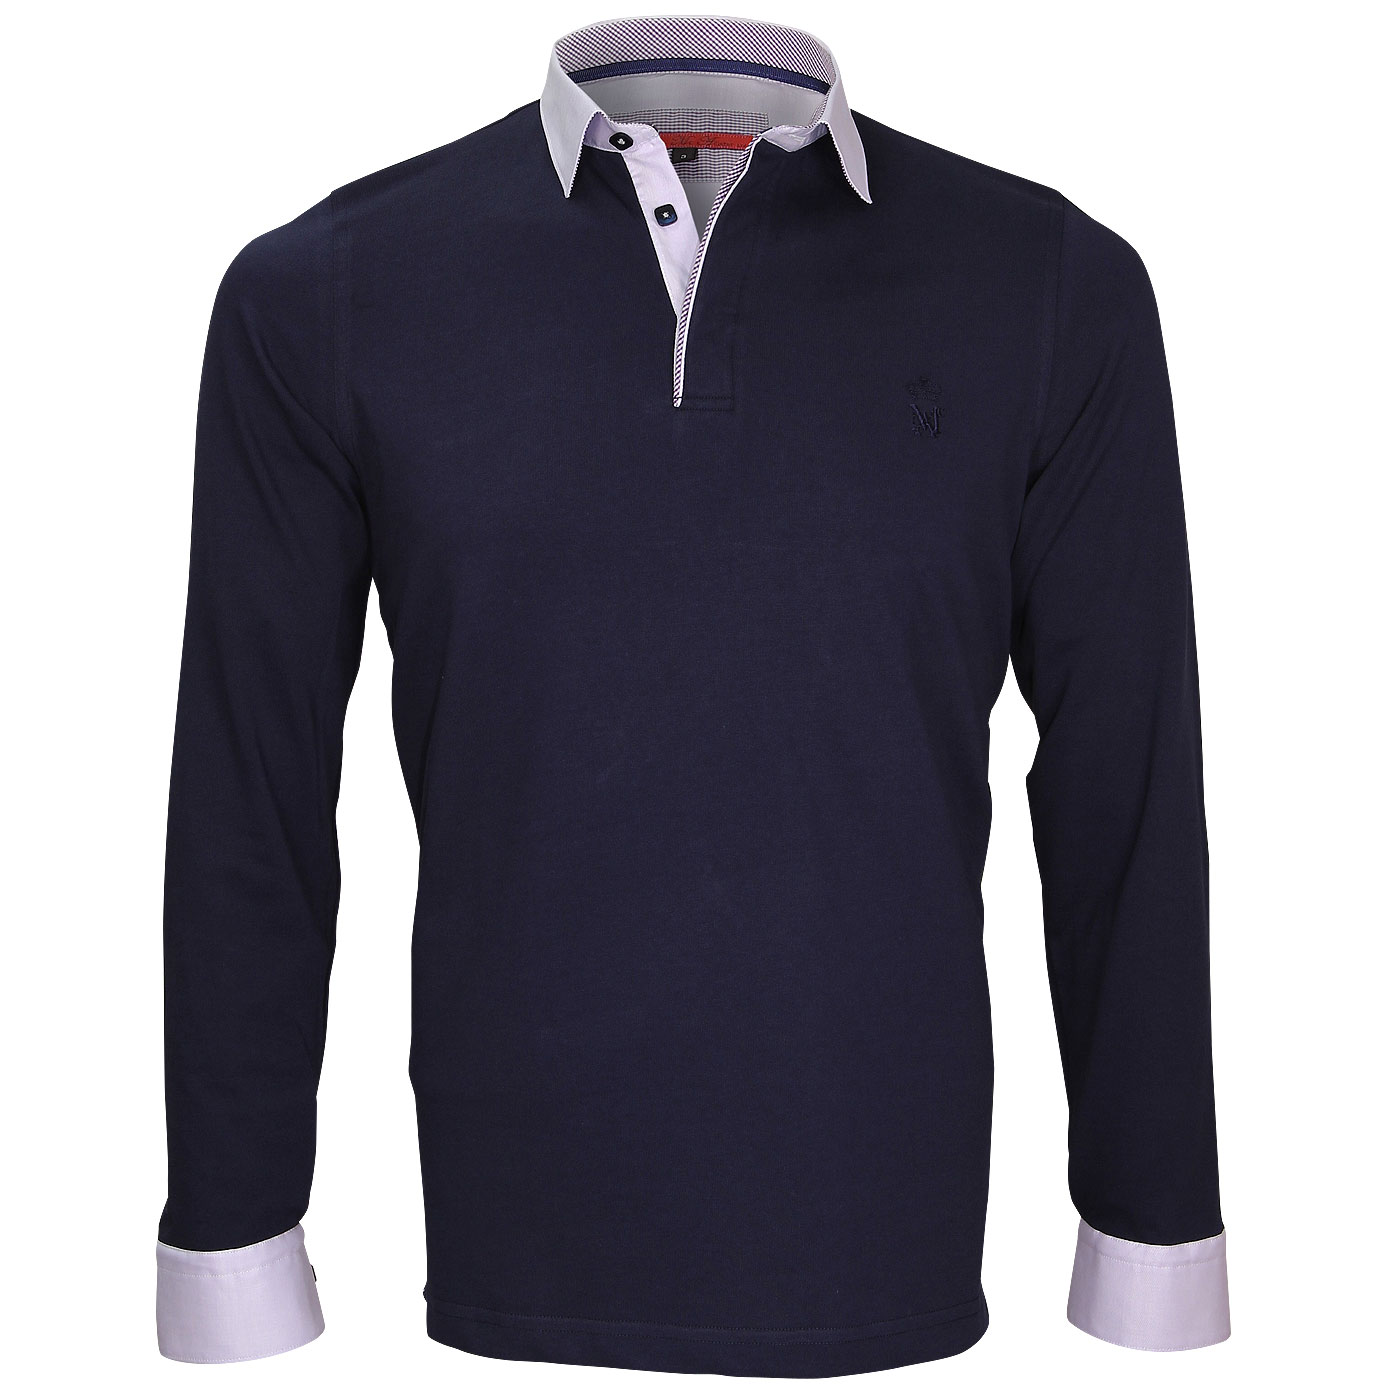 Men's Long Sleeve Polo shirt delivered in 48H on webmenshrits